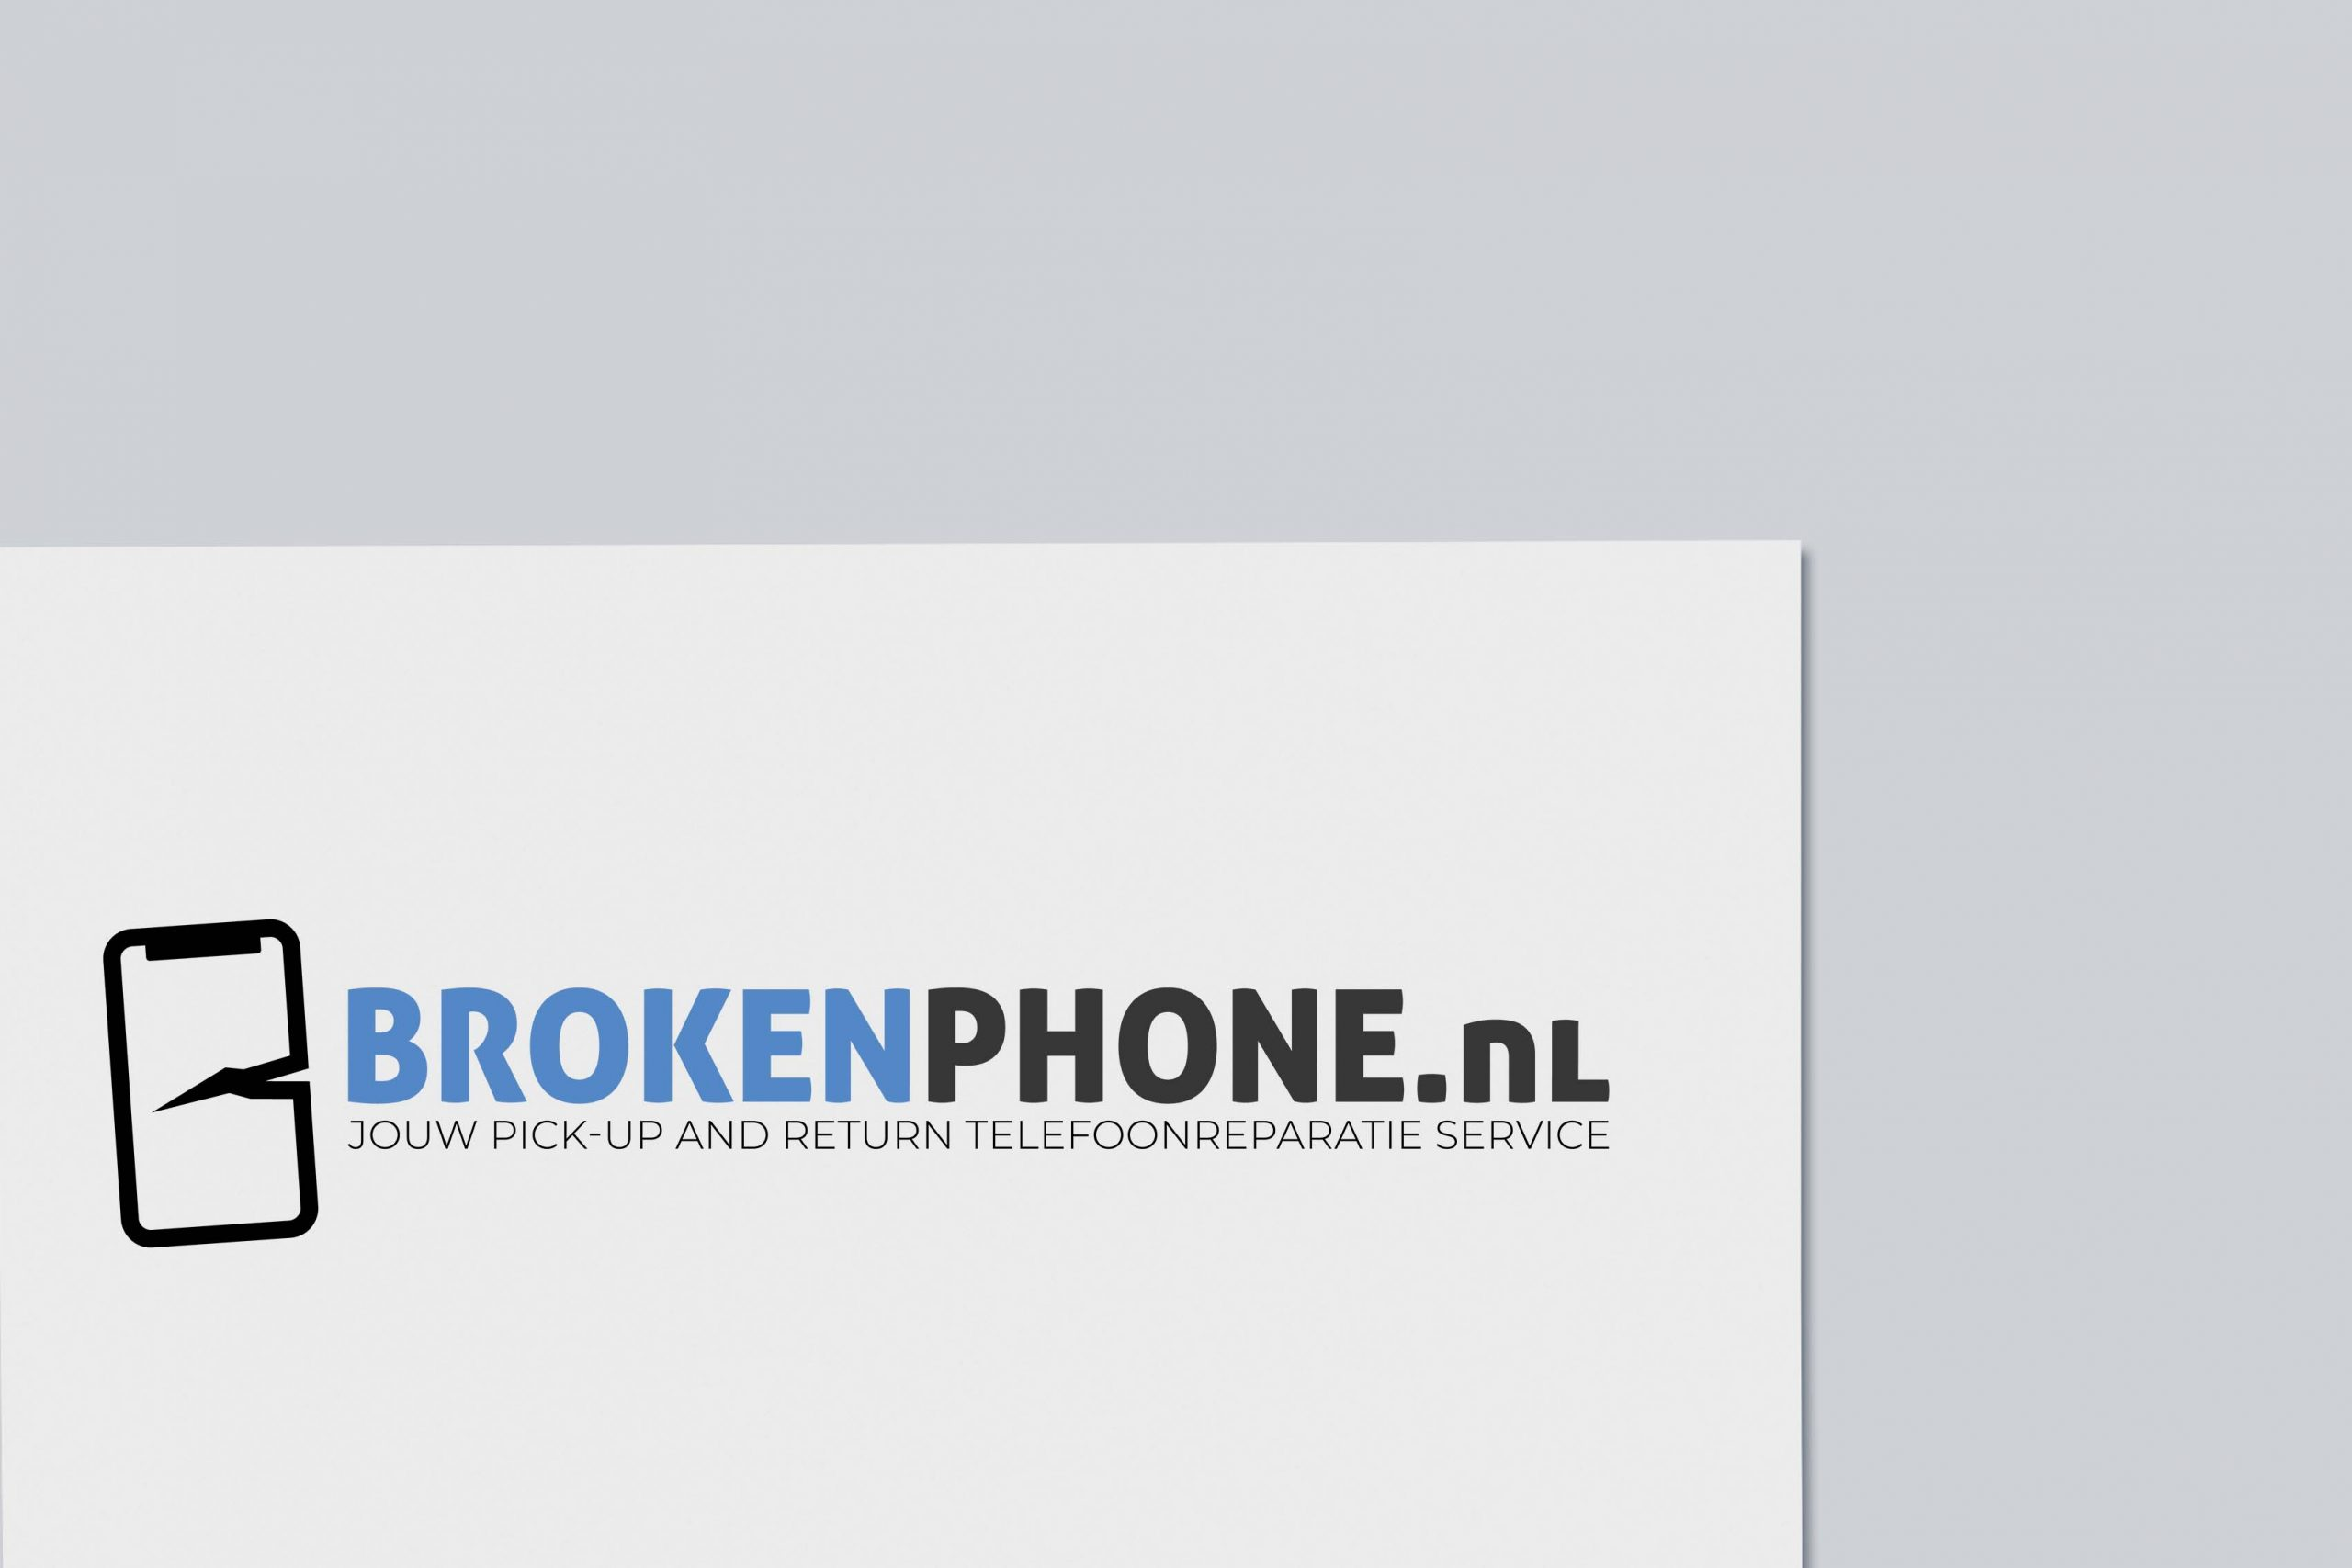 Brokenphone.nl